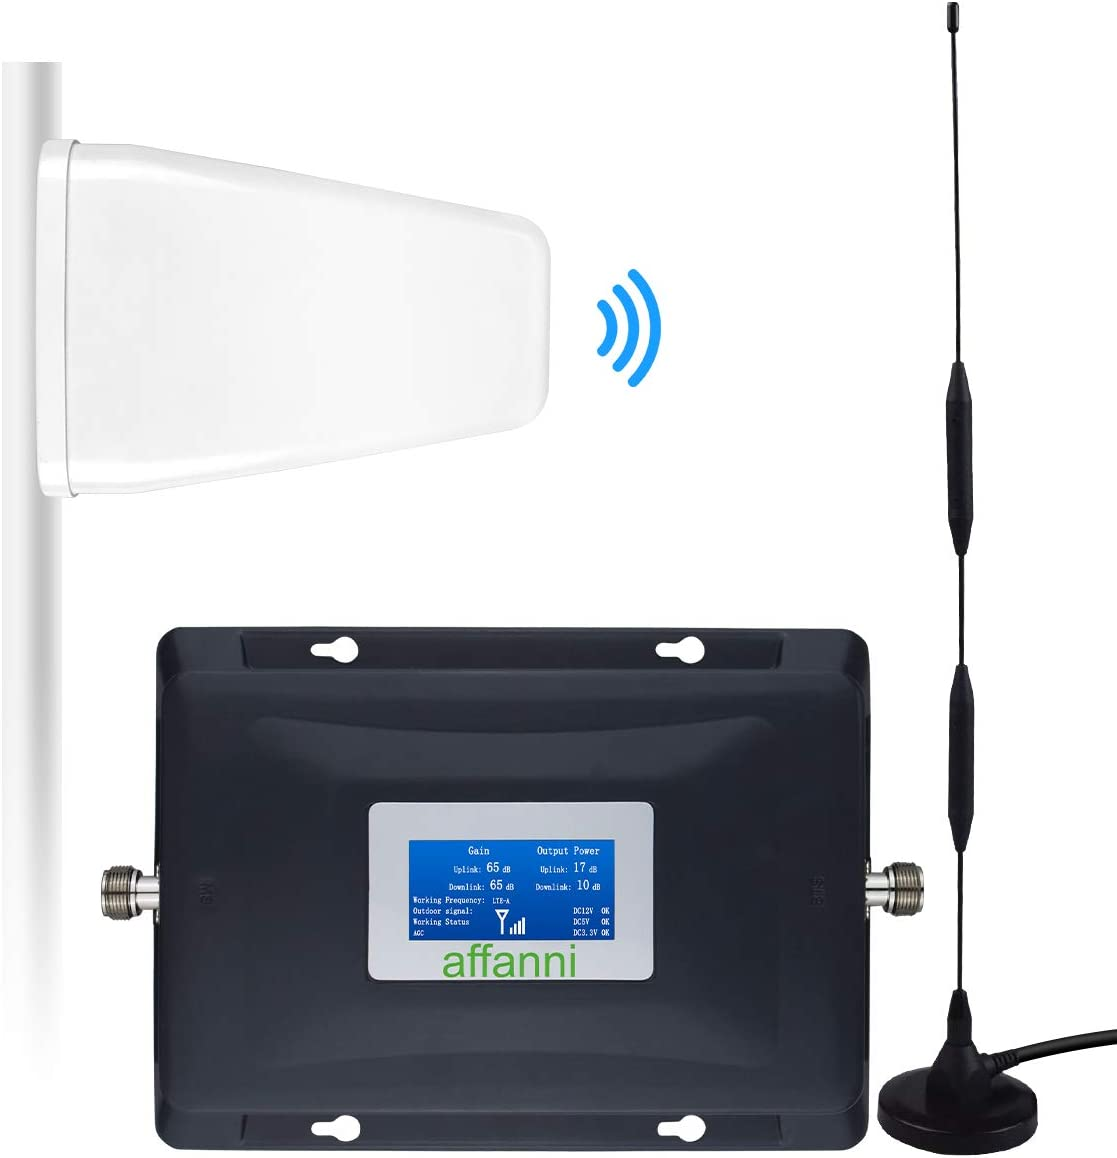 AT/&T Cell Phone Signal Booster T-Mobile US Cellular 700Mhz FDD Band12//17 4G LTE ATT Cell Phone Booster Repeater AT/&T Mobile Signal Booster Amplifier Do not Include Indoor//Outdoor Antennas